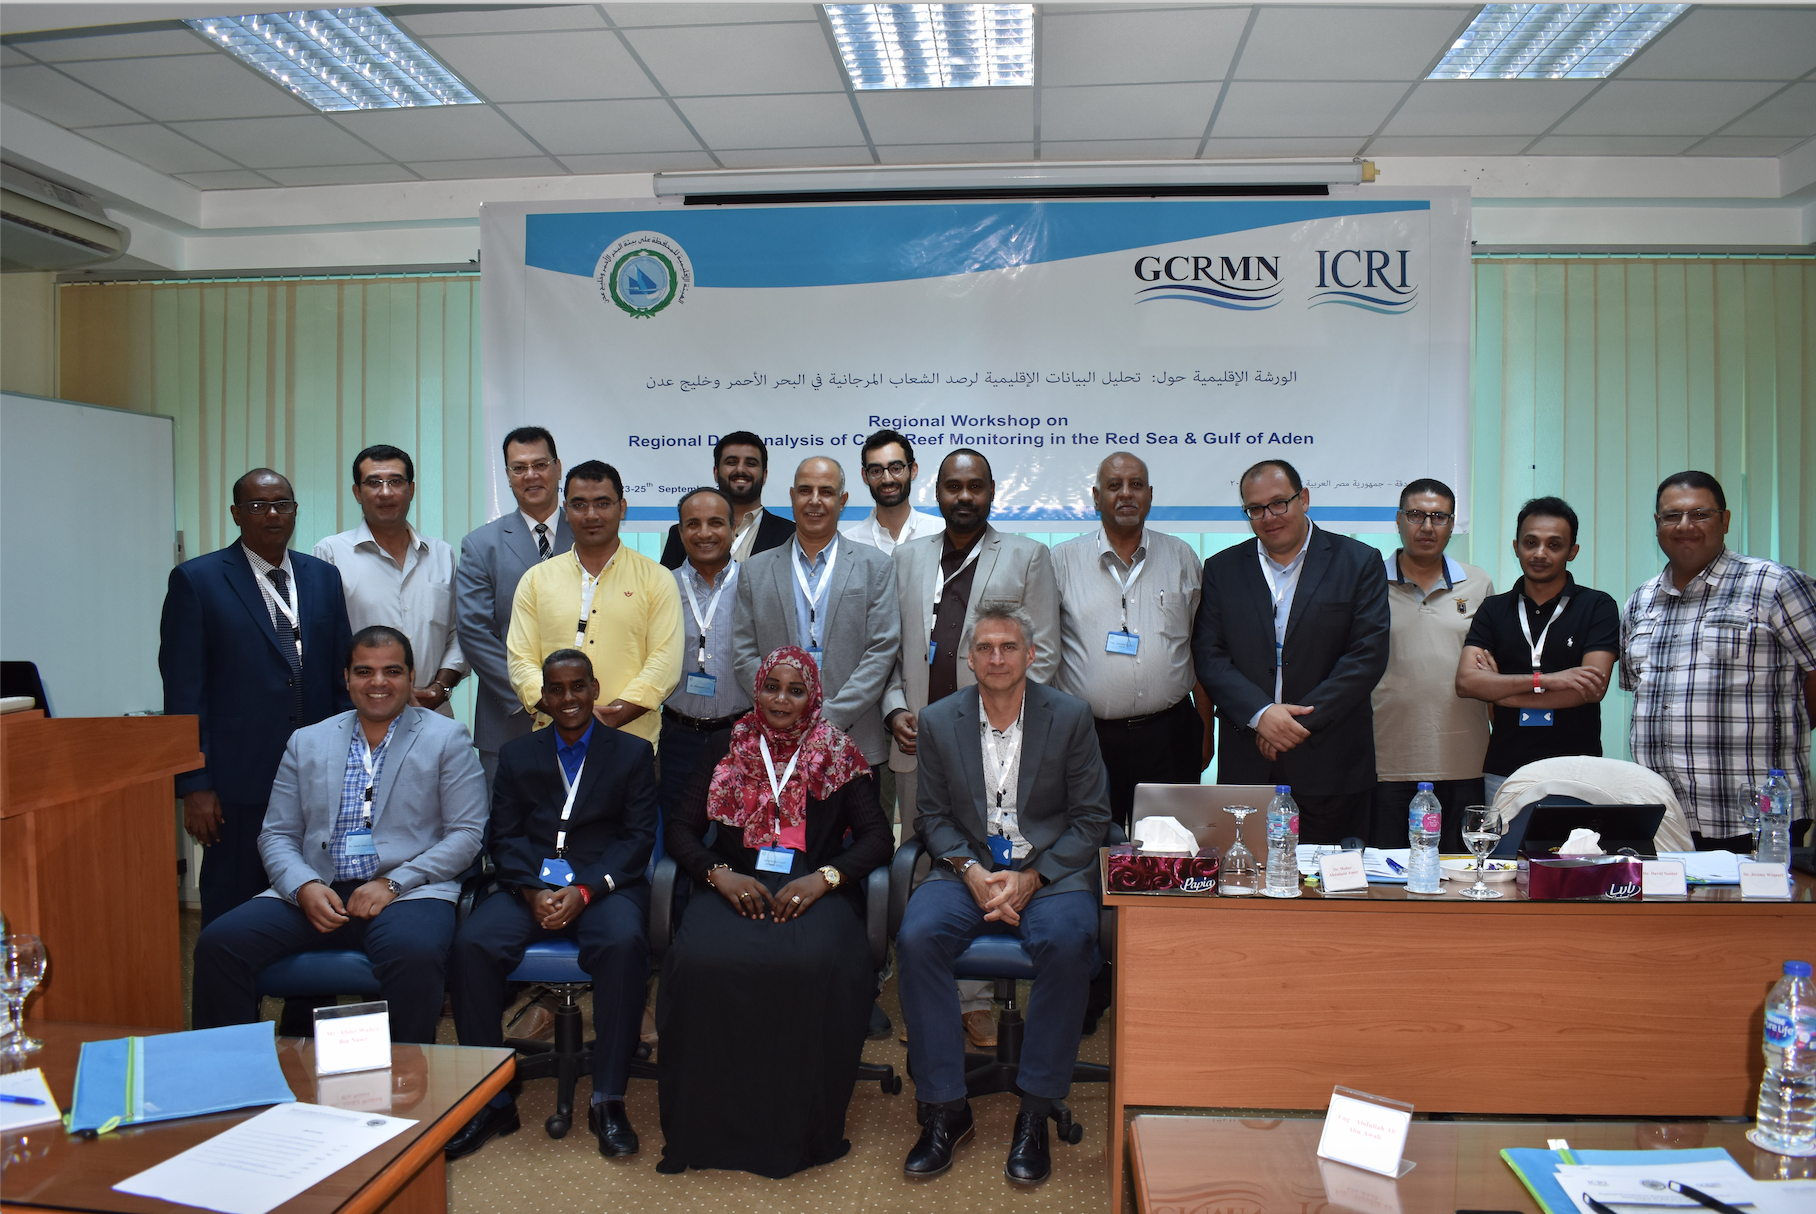 GCRMN regional workshop on data analysis of Coral reef monitoring in the Red Sea and Gulf of Aden